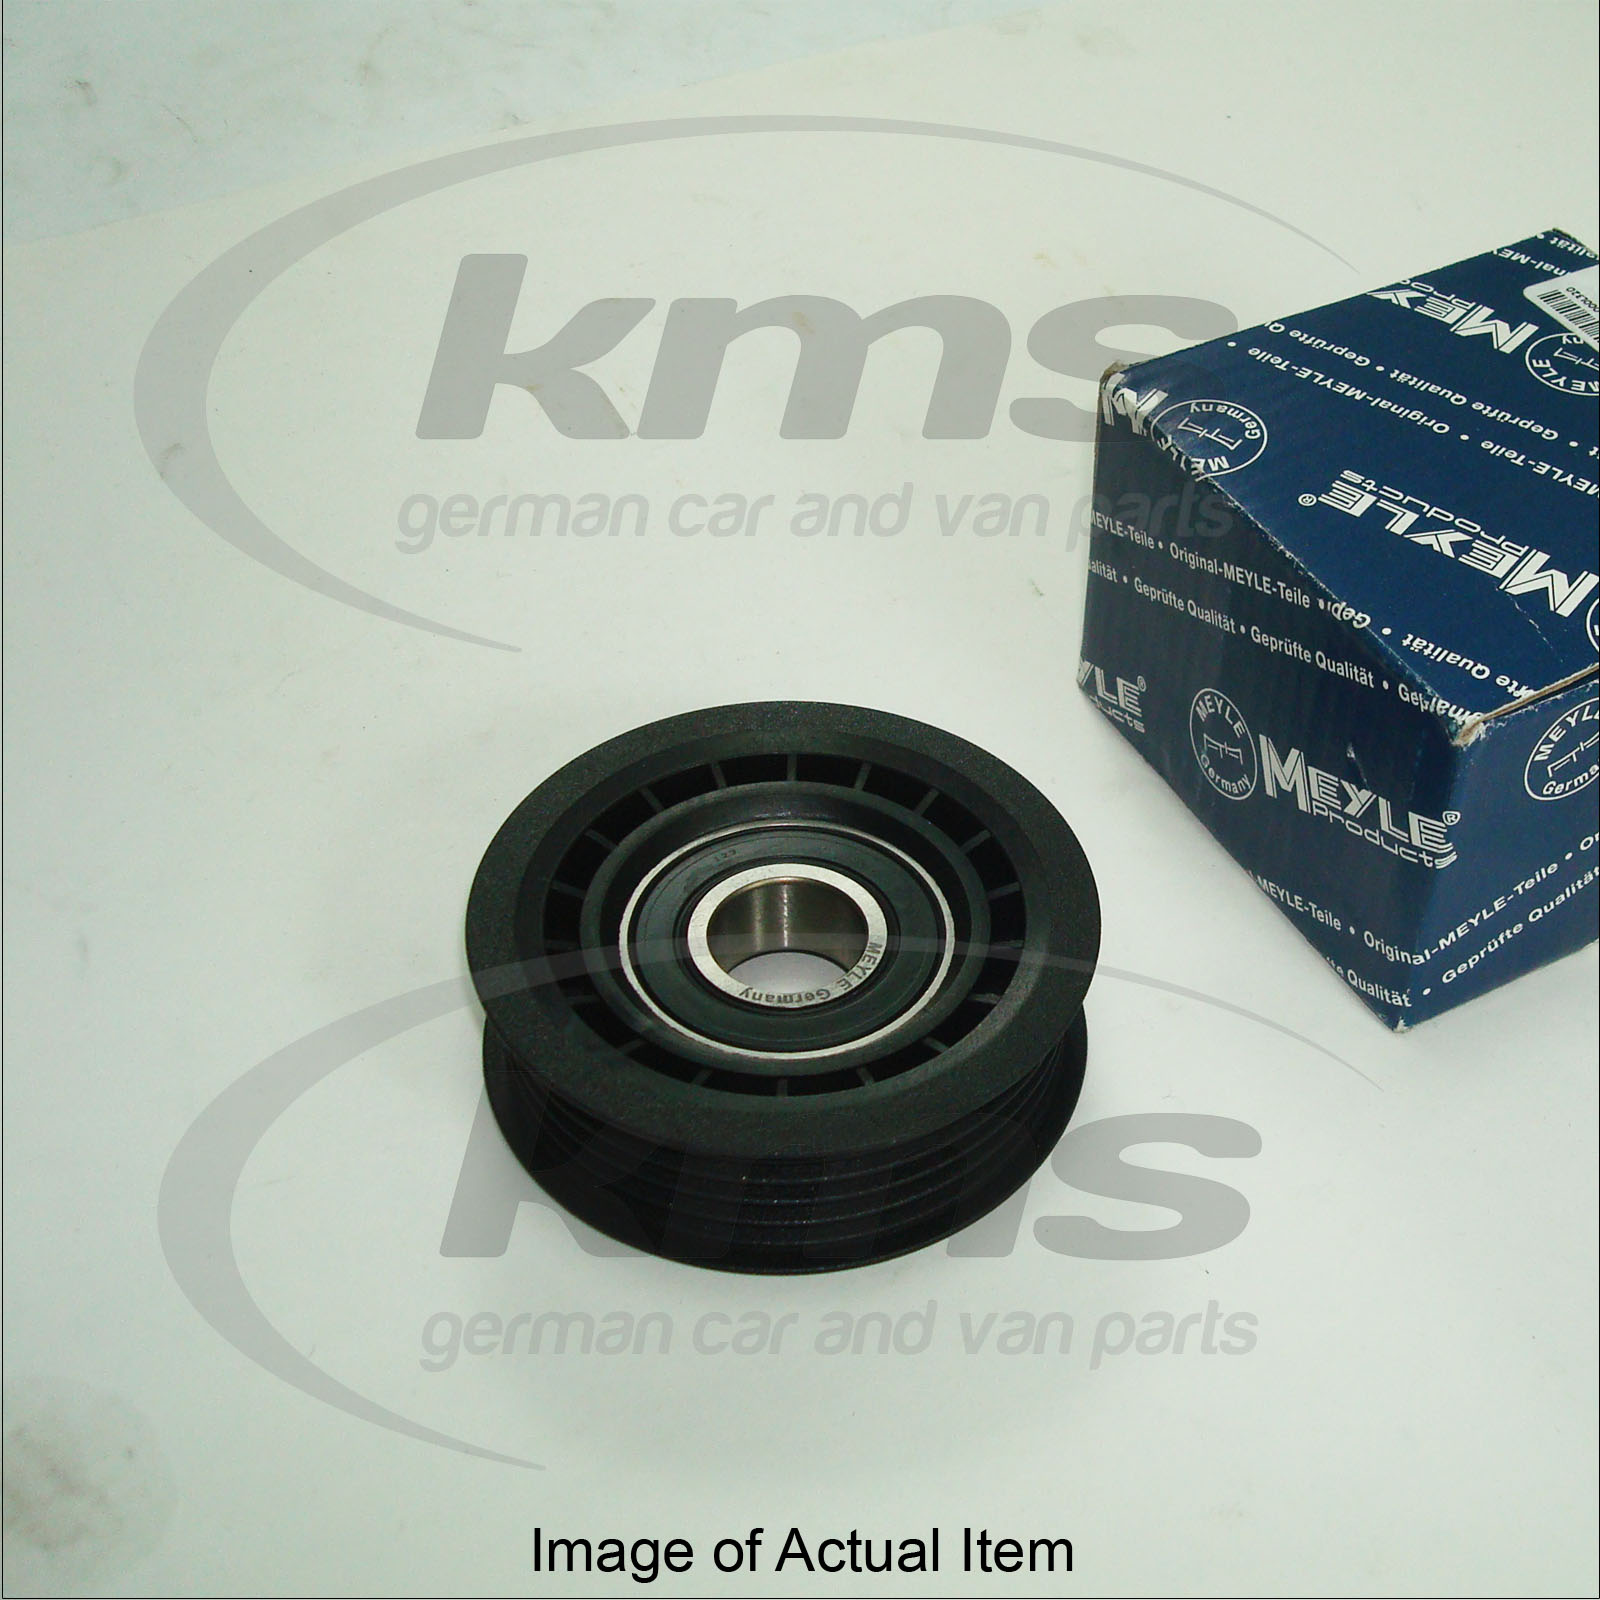 Poly v belt pulley w168 a140 a160 98 mercedes a class for Poly v belt for mercedes benz